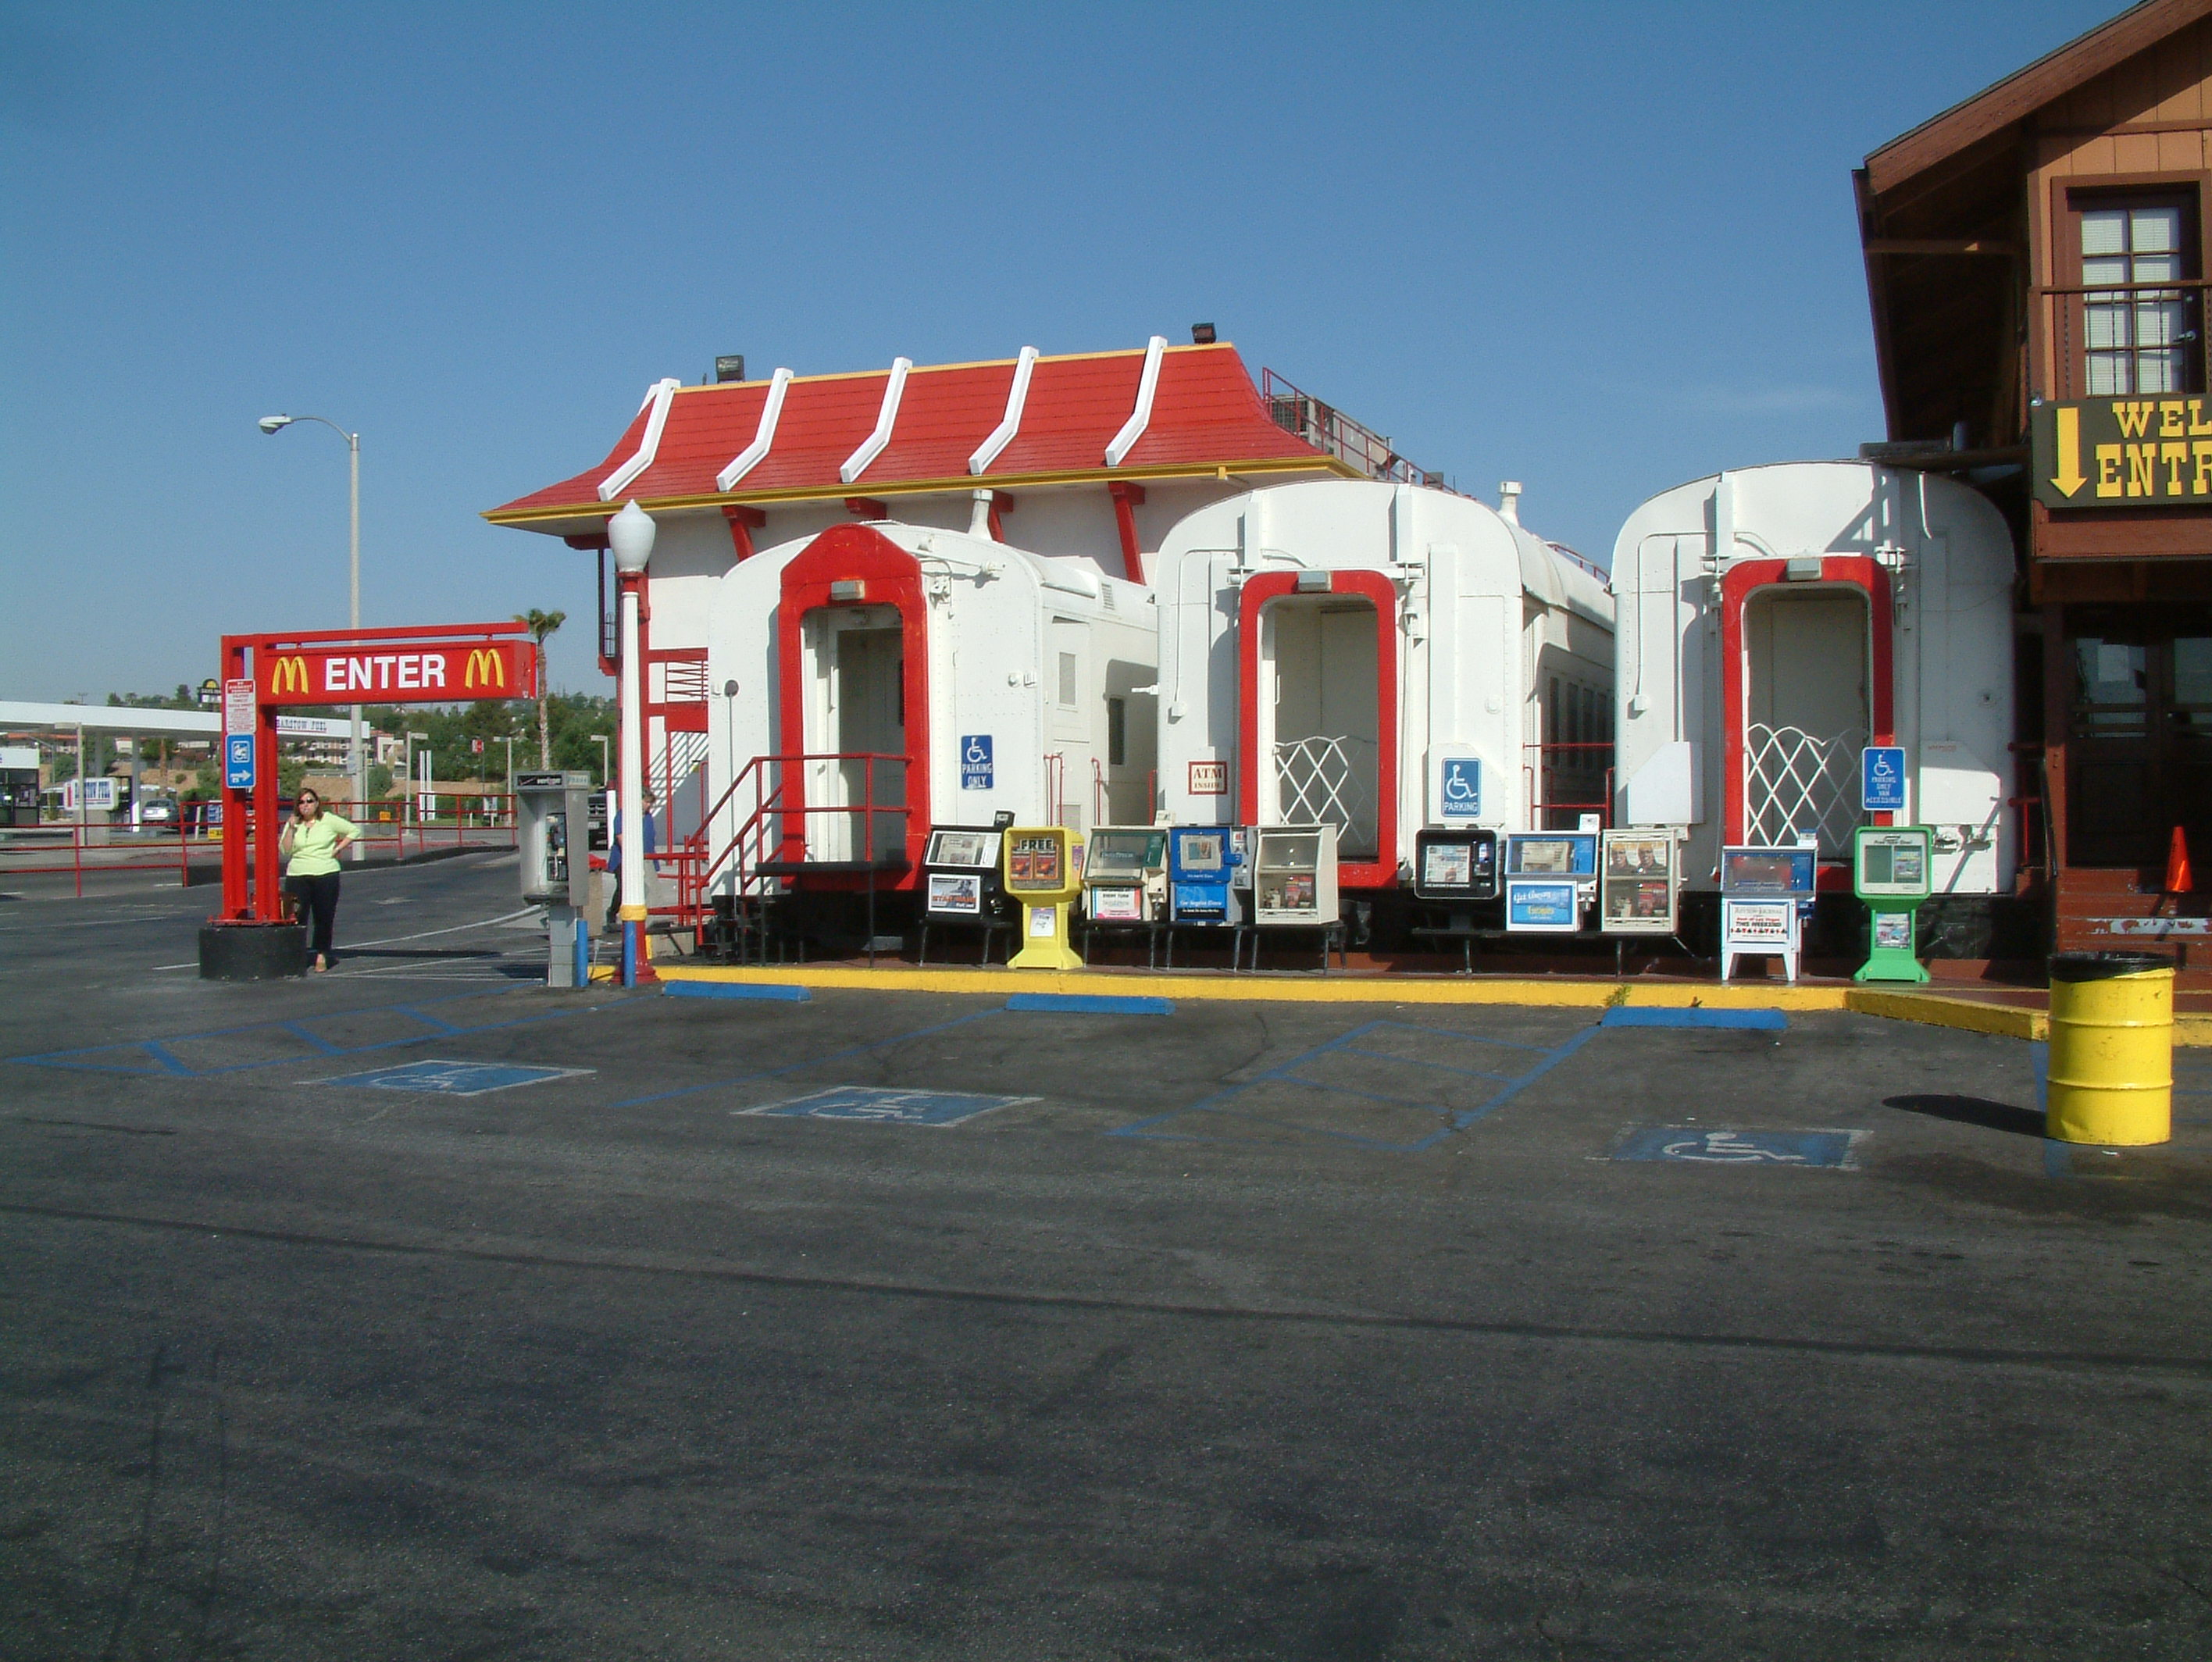 10 McDonalds Locations That Actually Exist